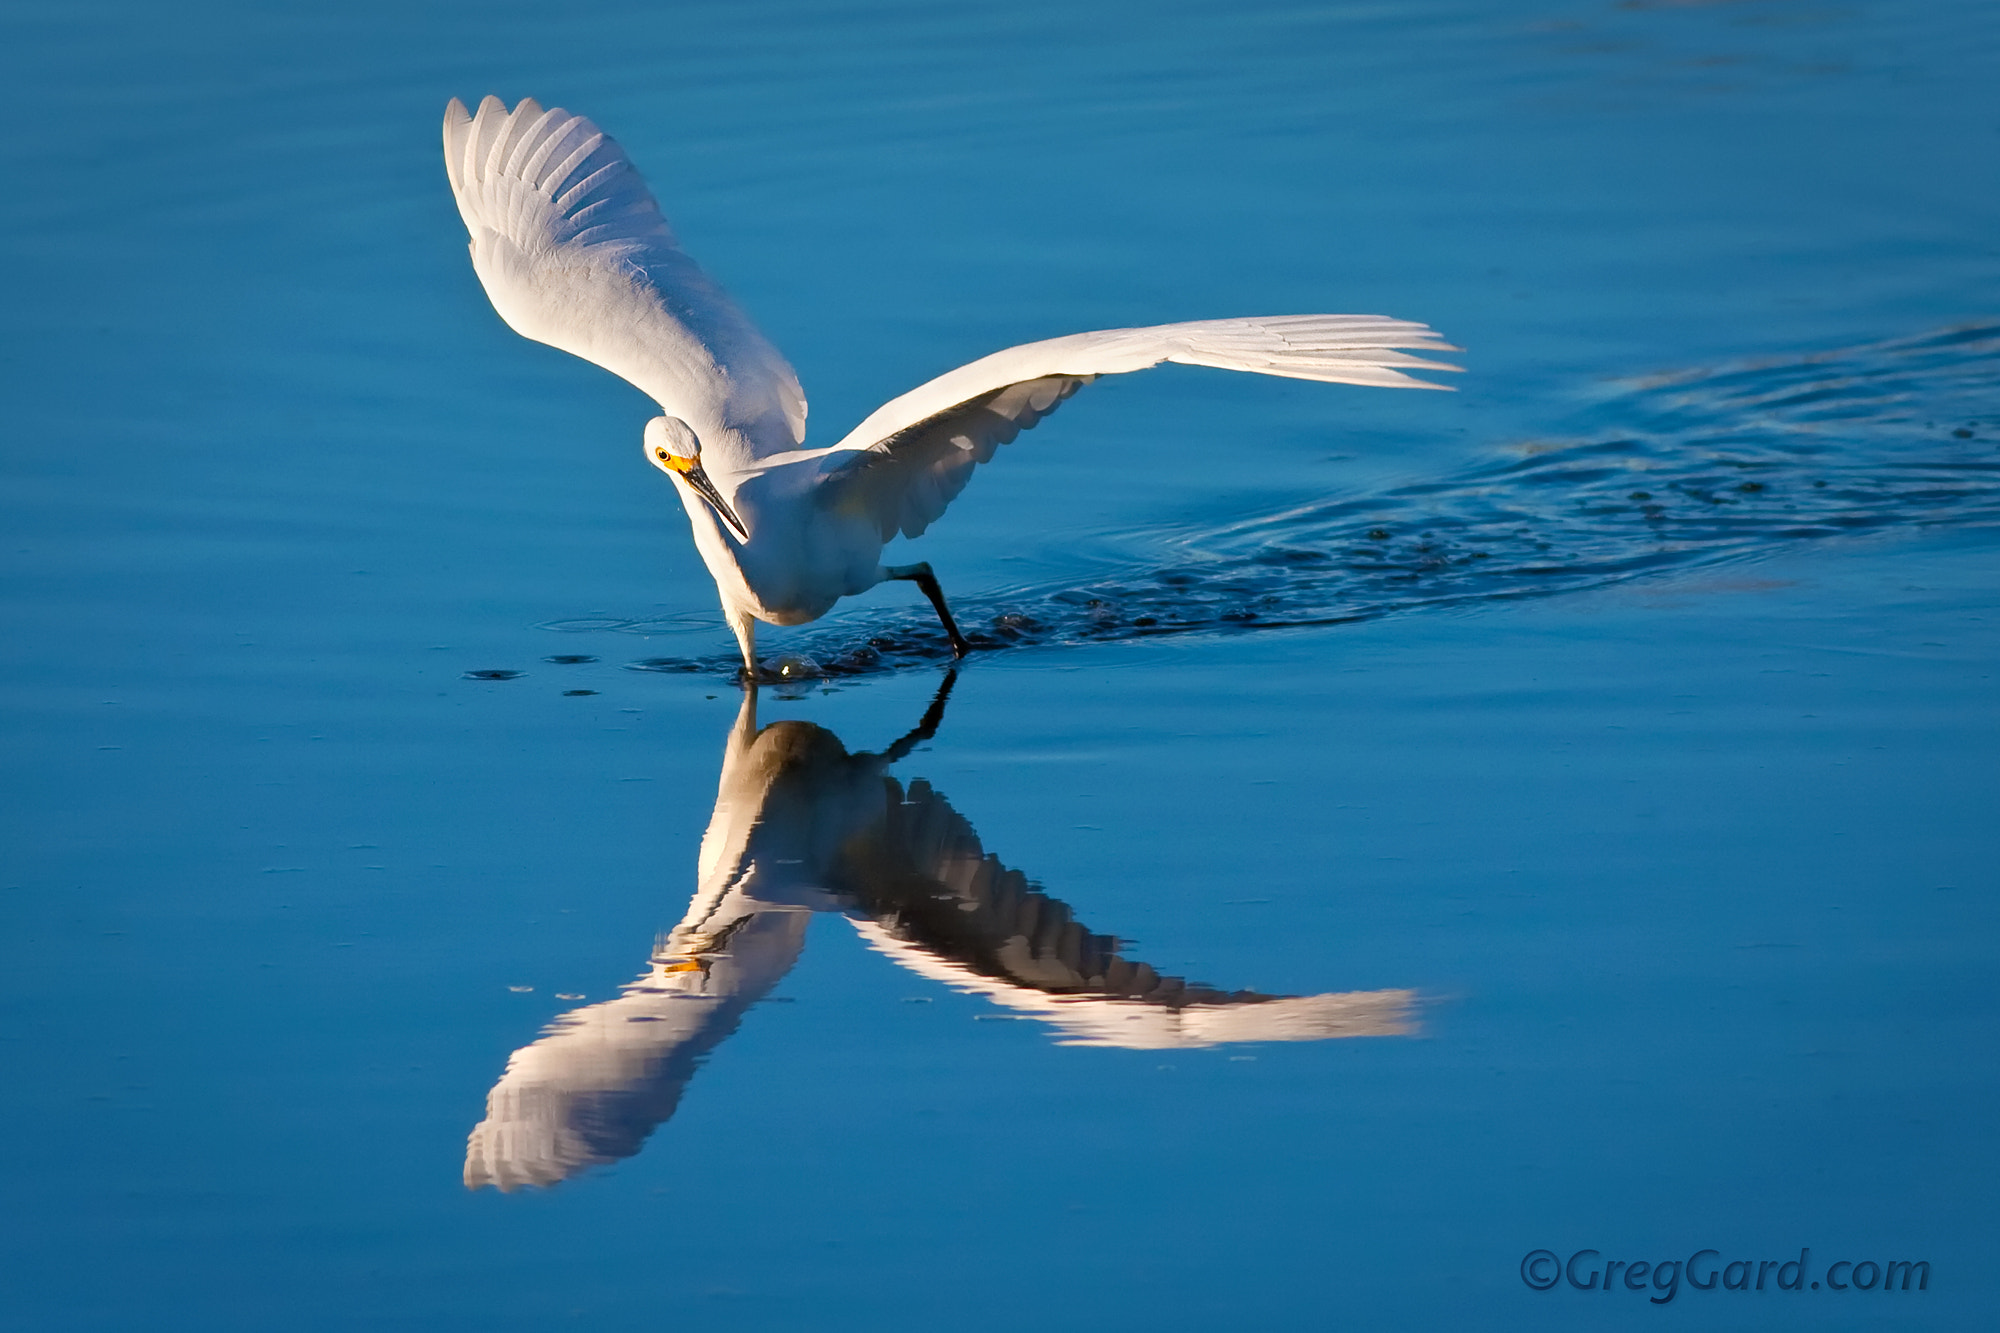 Photograph Chasing Fish - Snowy Egret by Greg Gard on 500px